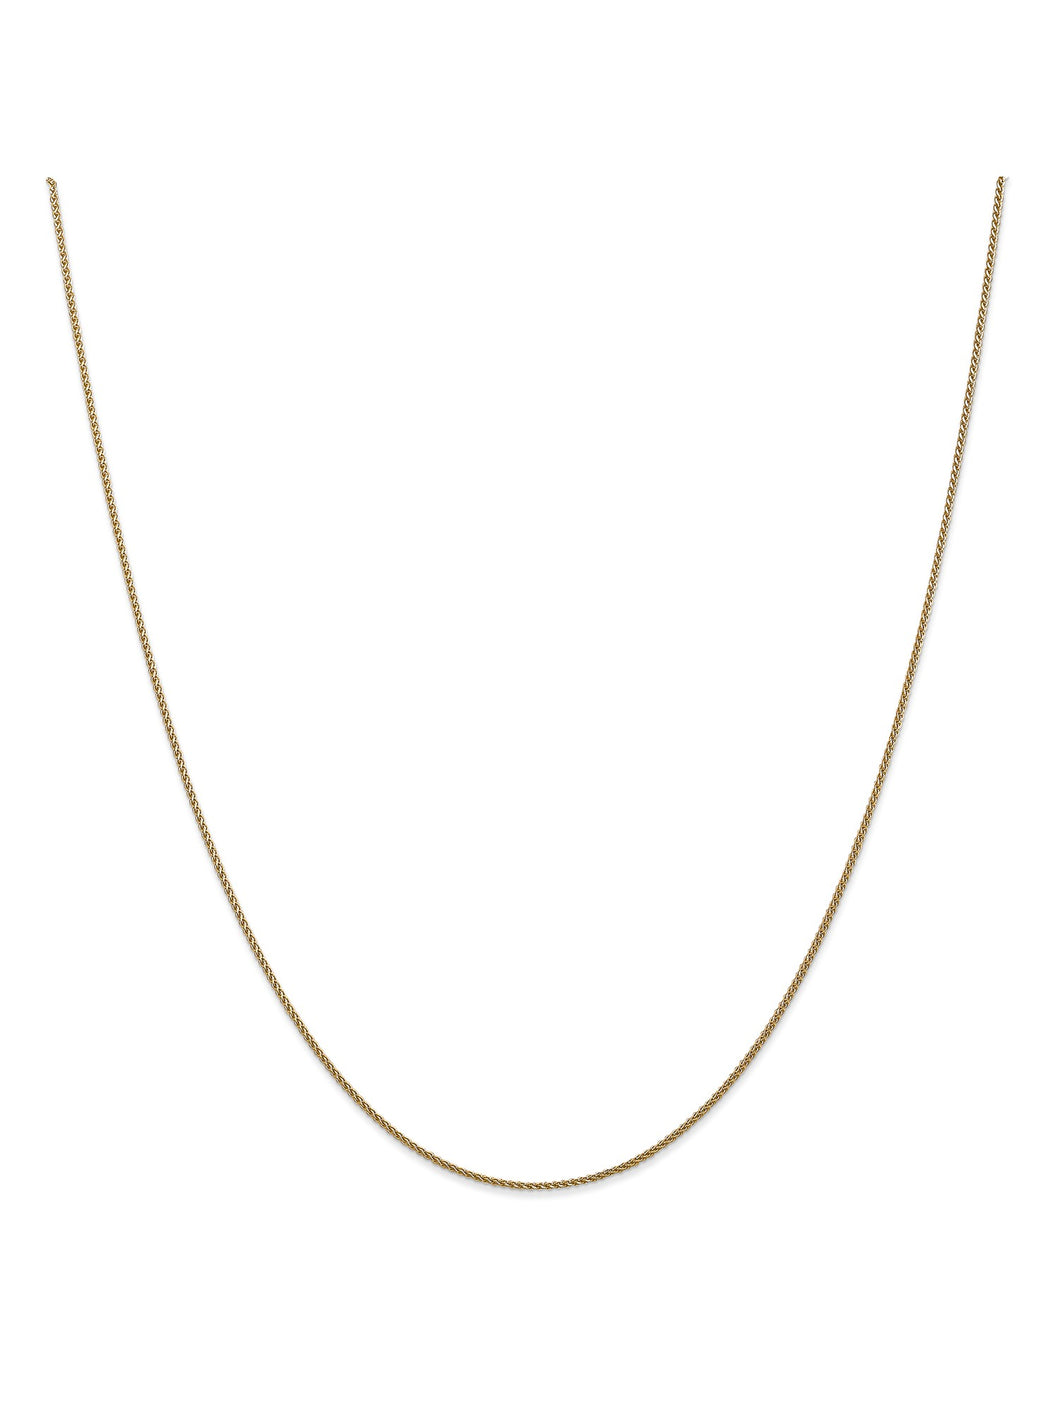 14k Yellow Gold 1mm Wide Wheat Chain Necklace